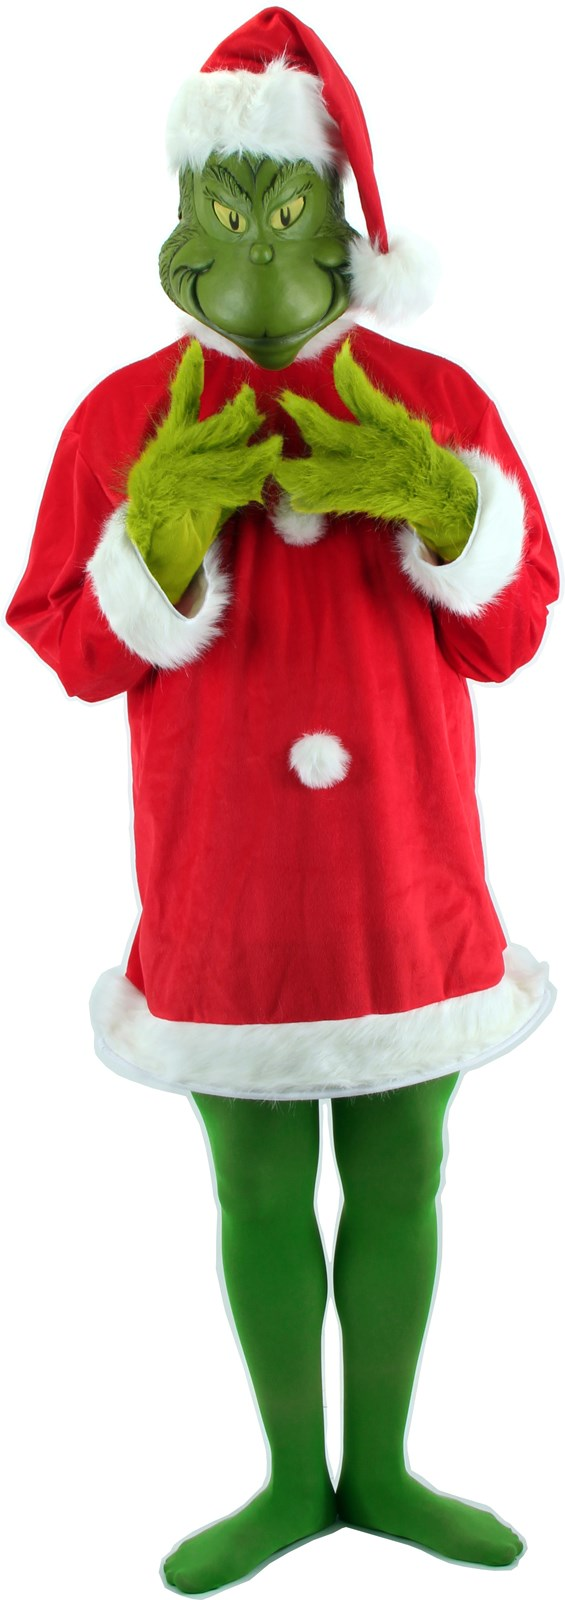 How the Grinch Stole Christmas - The Grinch Deluxe Adult Costume